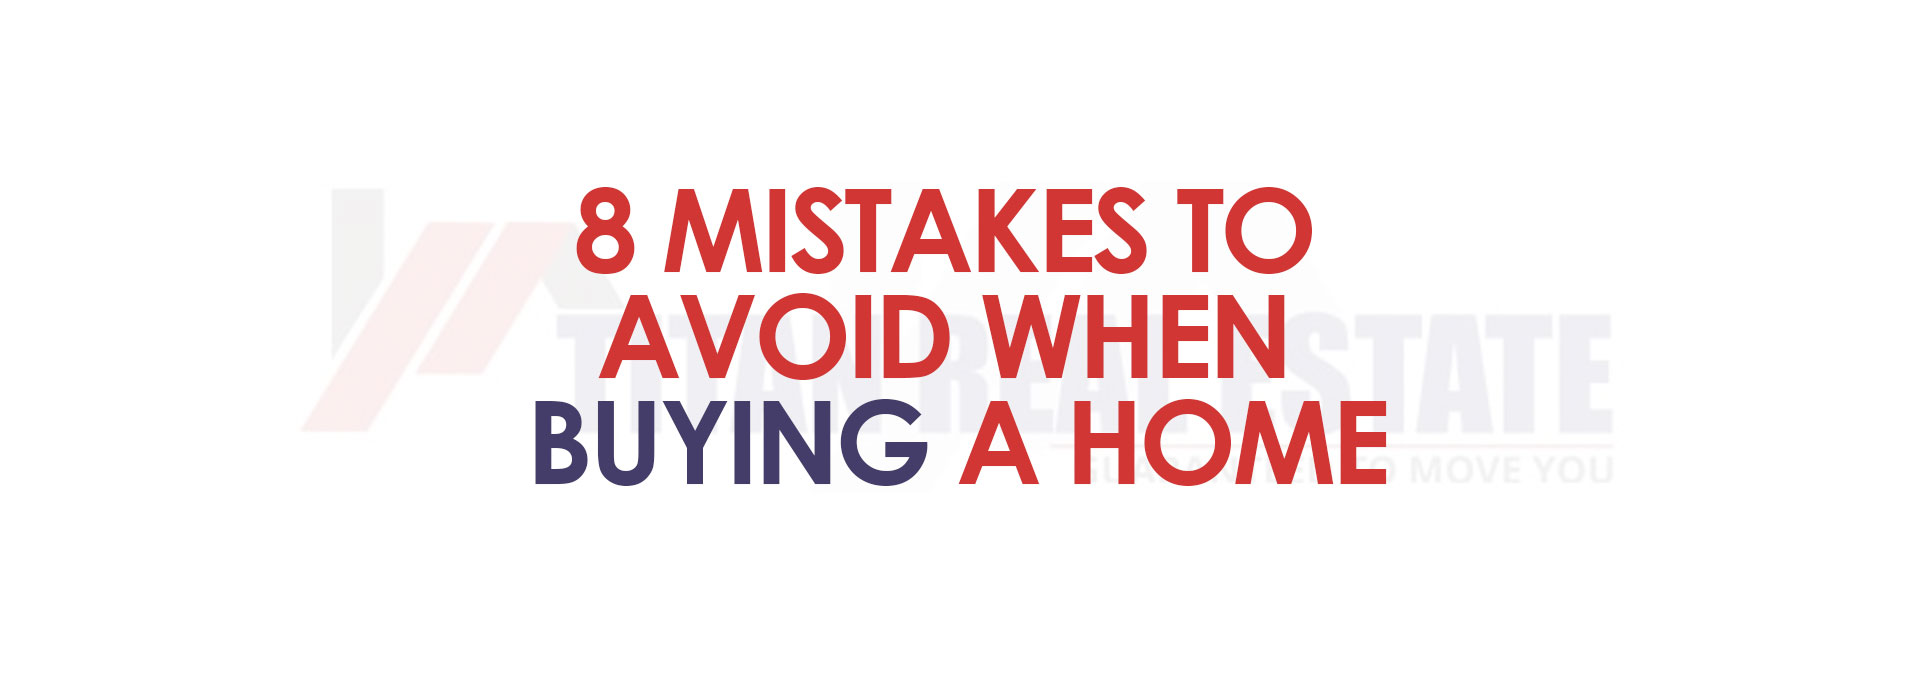 8-mistakes-to-avoid-when-buying-a-home